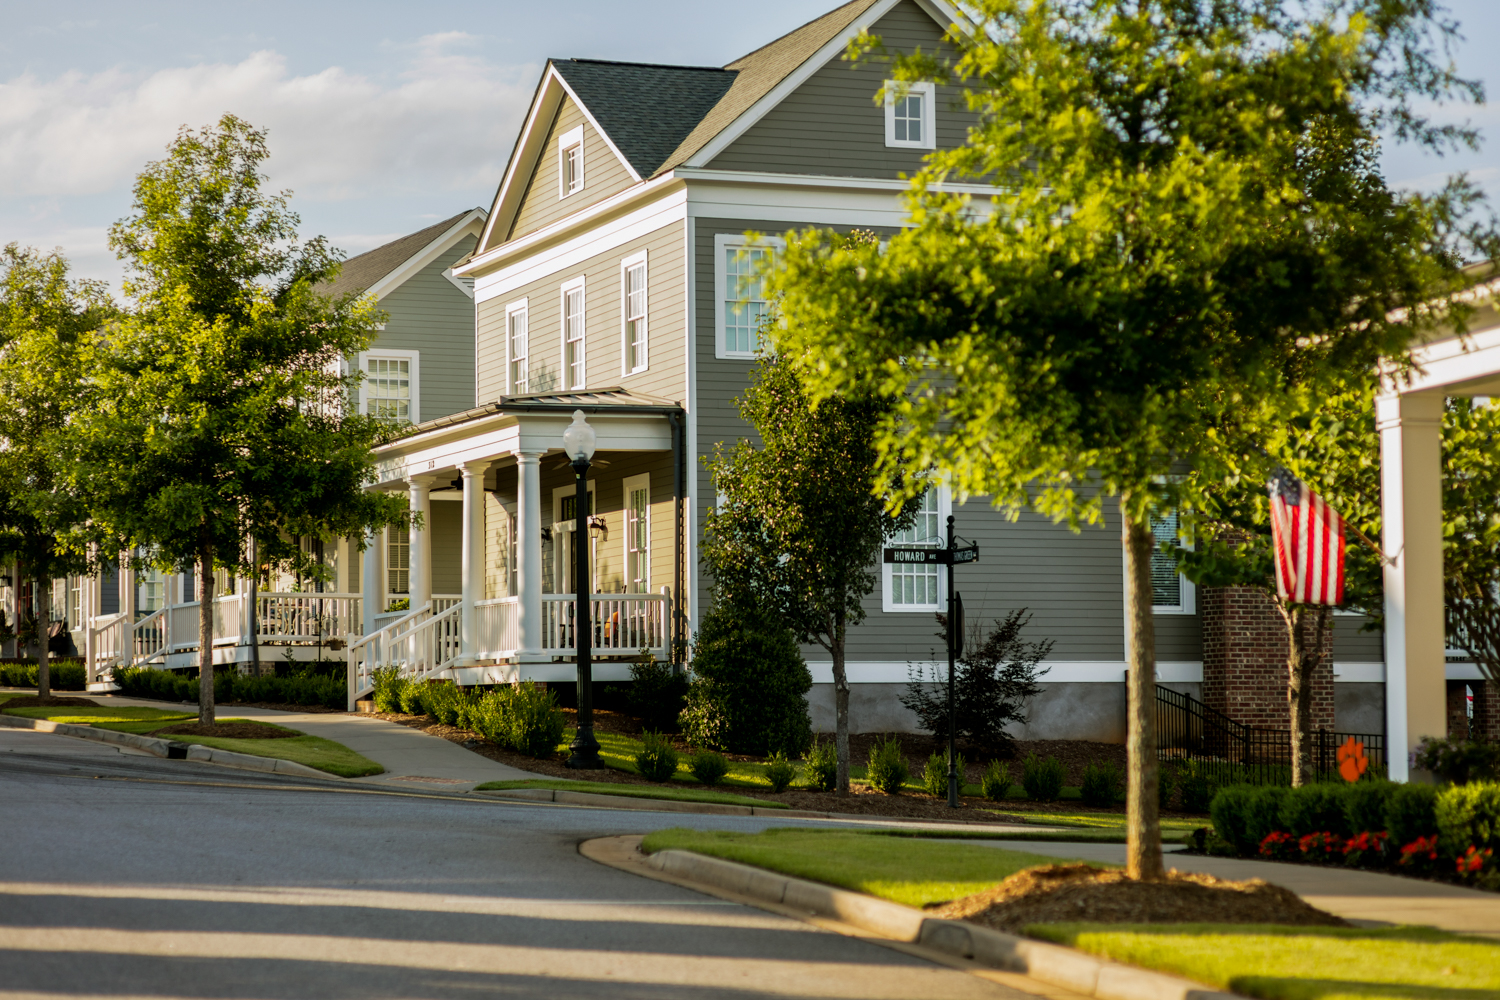 Traditional Southern Living at Patrick Square